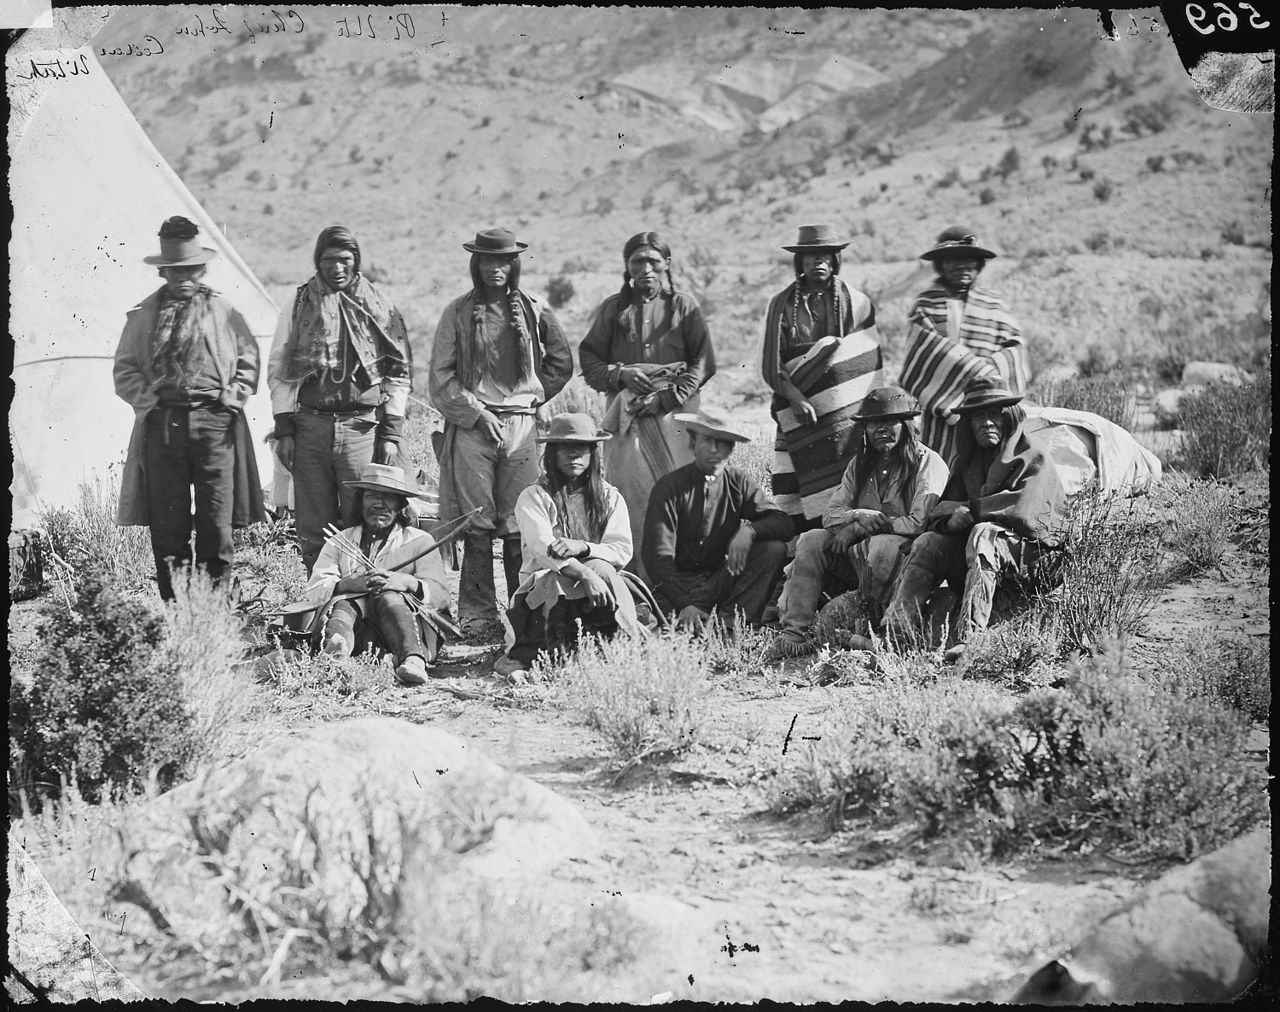 hindu single men in ute Ute indian tribesite the utes have a tribal membership of 2,970 and over half of its membership lives on the reservation.